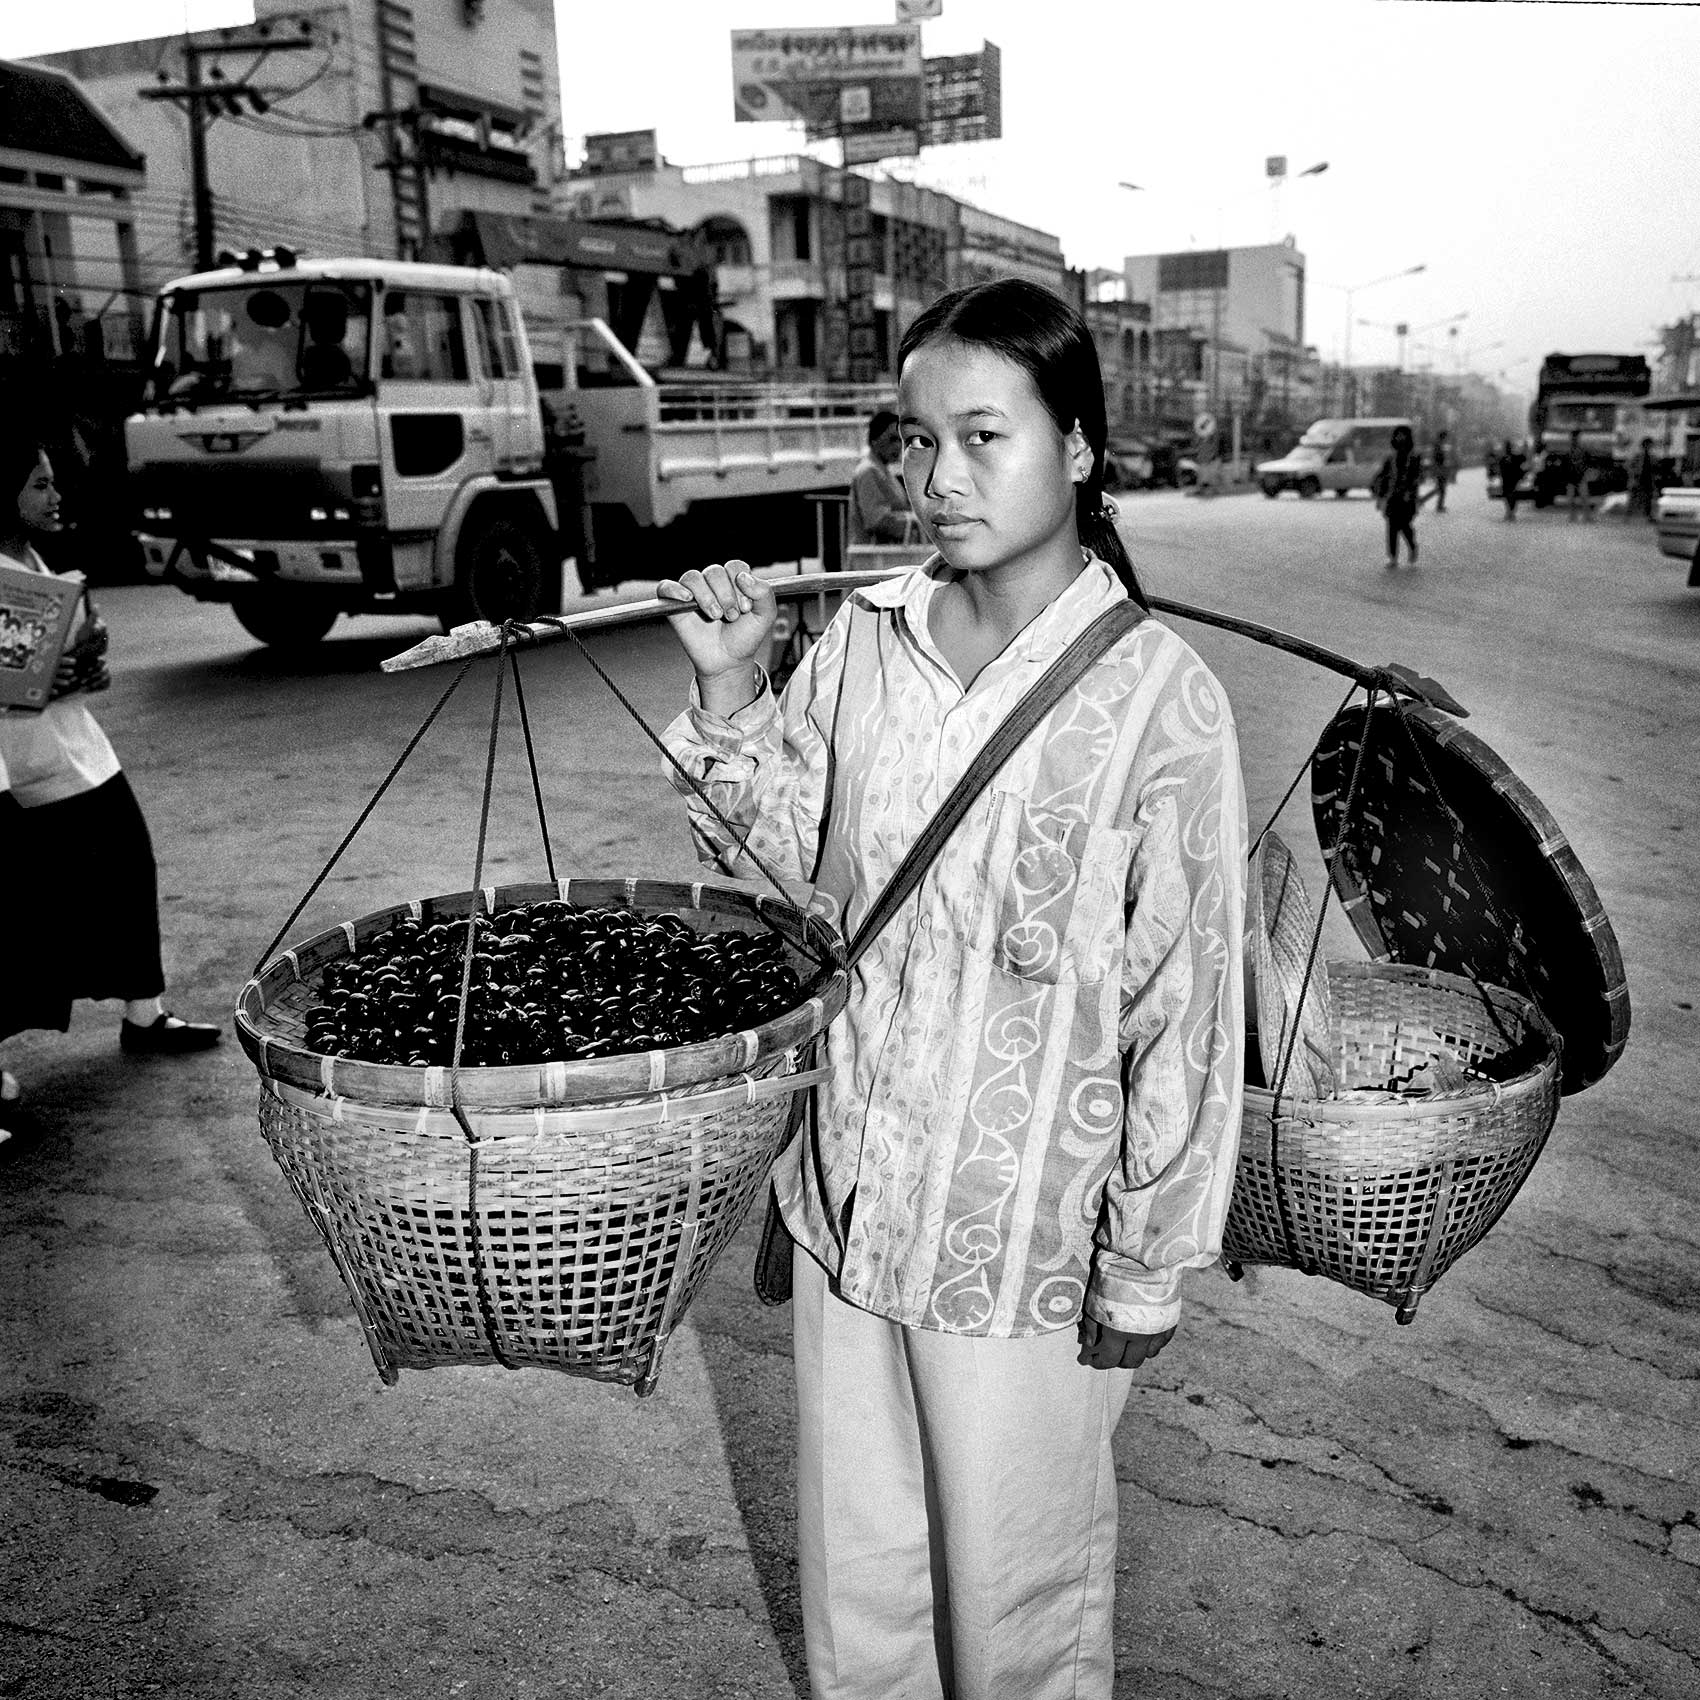 a-young-woman-carries-her-food-to-the-market-to-sell-in-phnom-pehn-cambodia